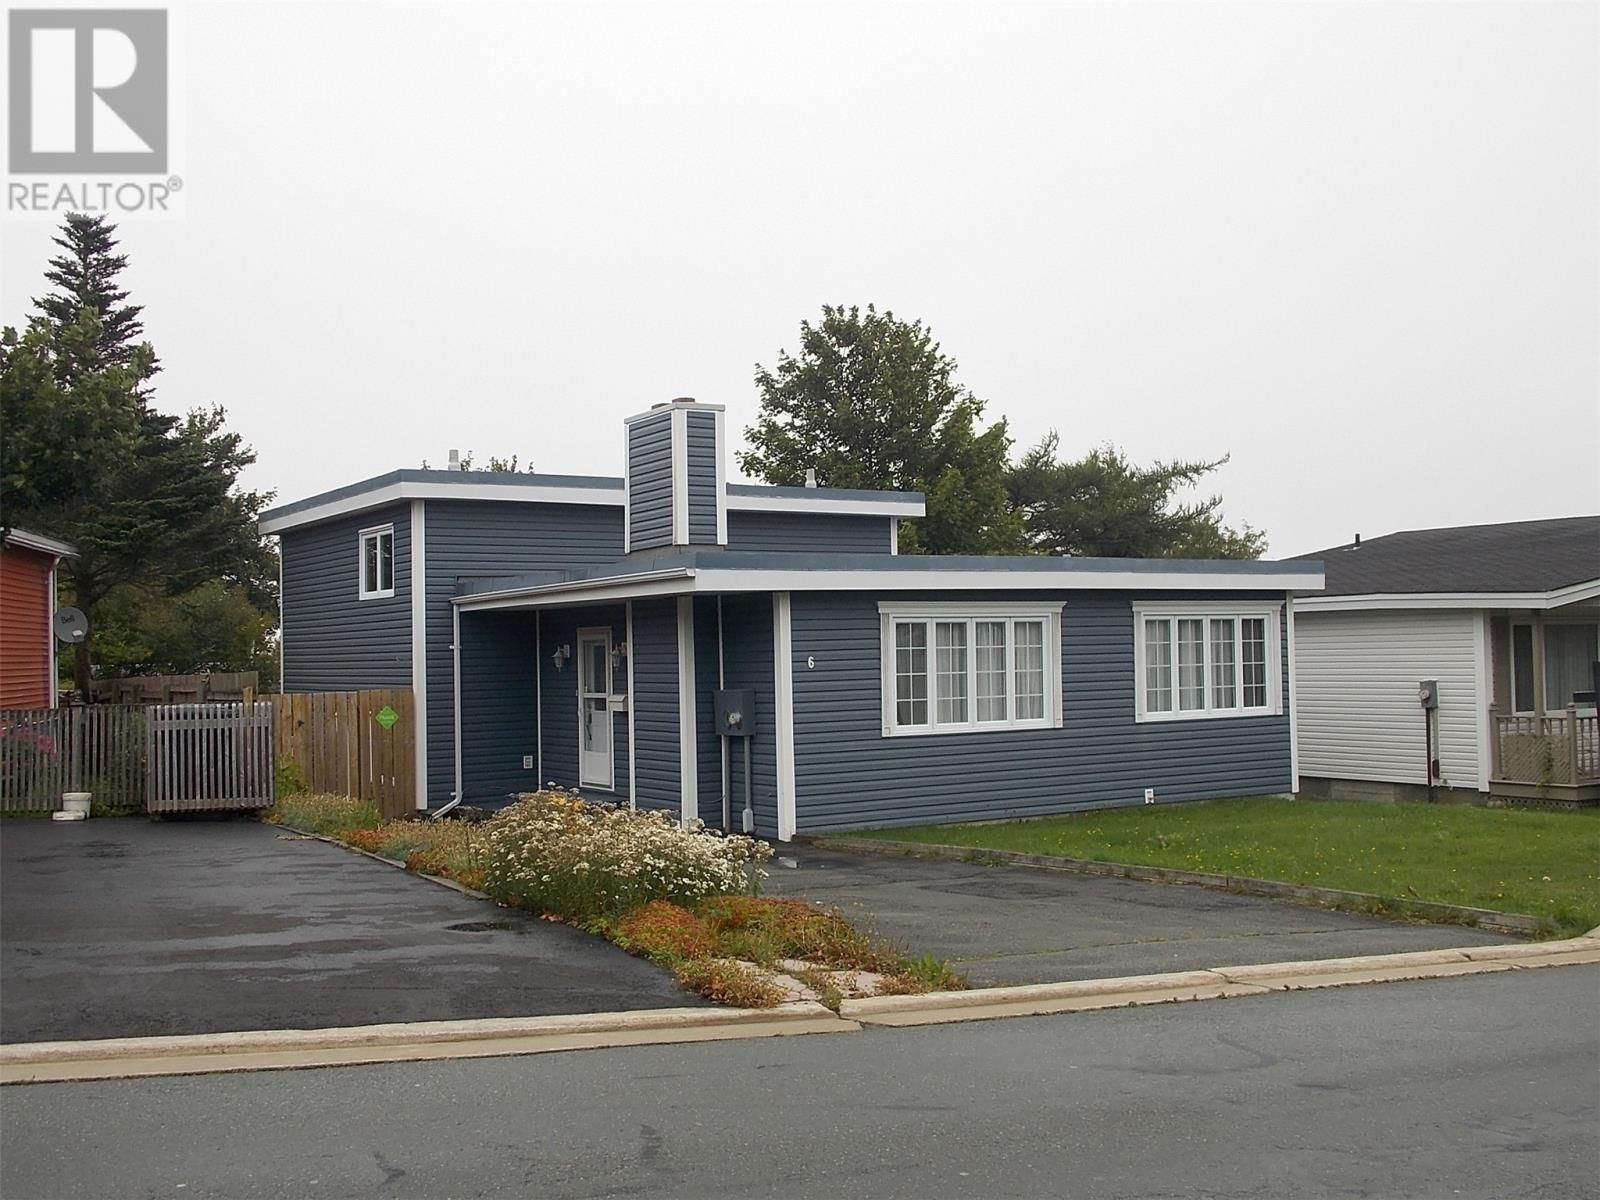 Main Photo: 6 Jackman Drive W in Mount Pearl: House for sale : MLS®# 1236869